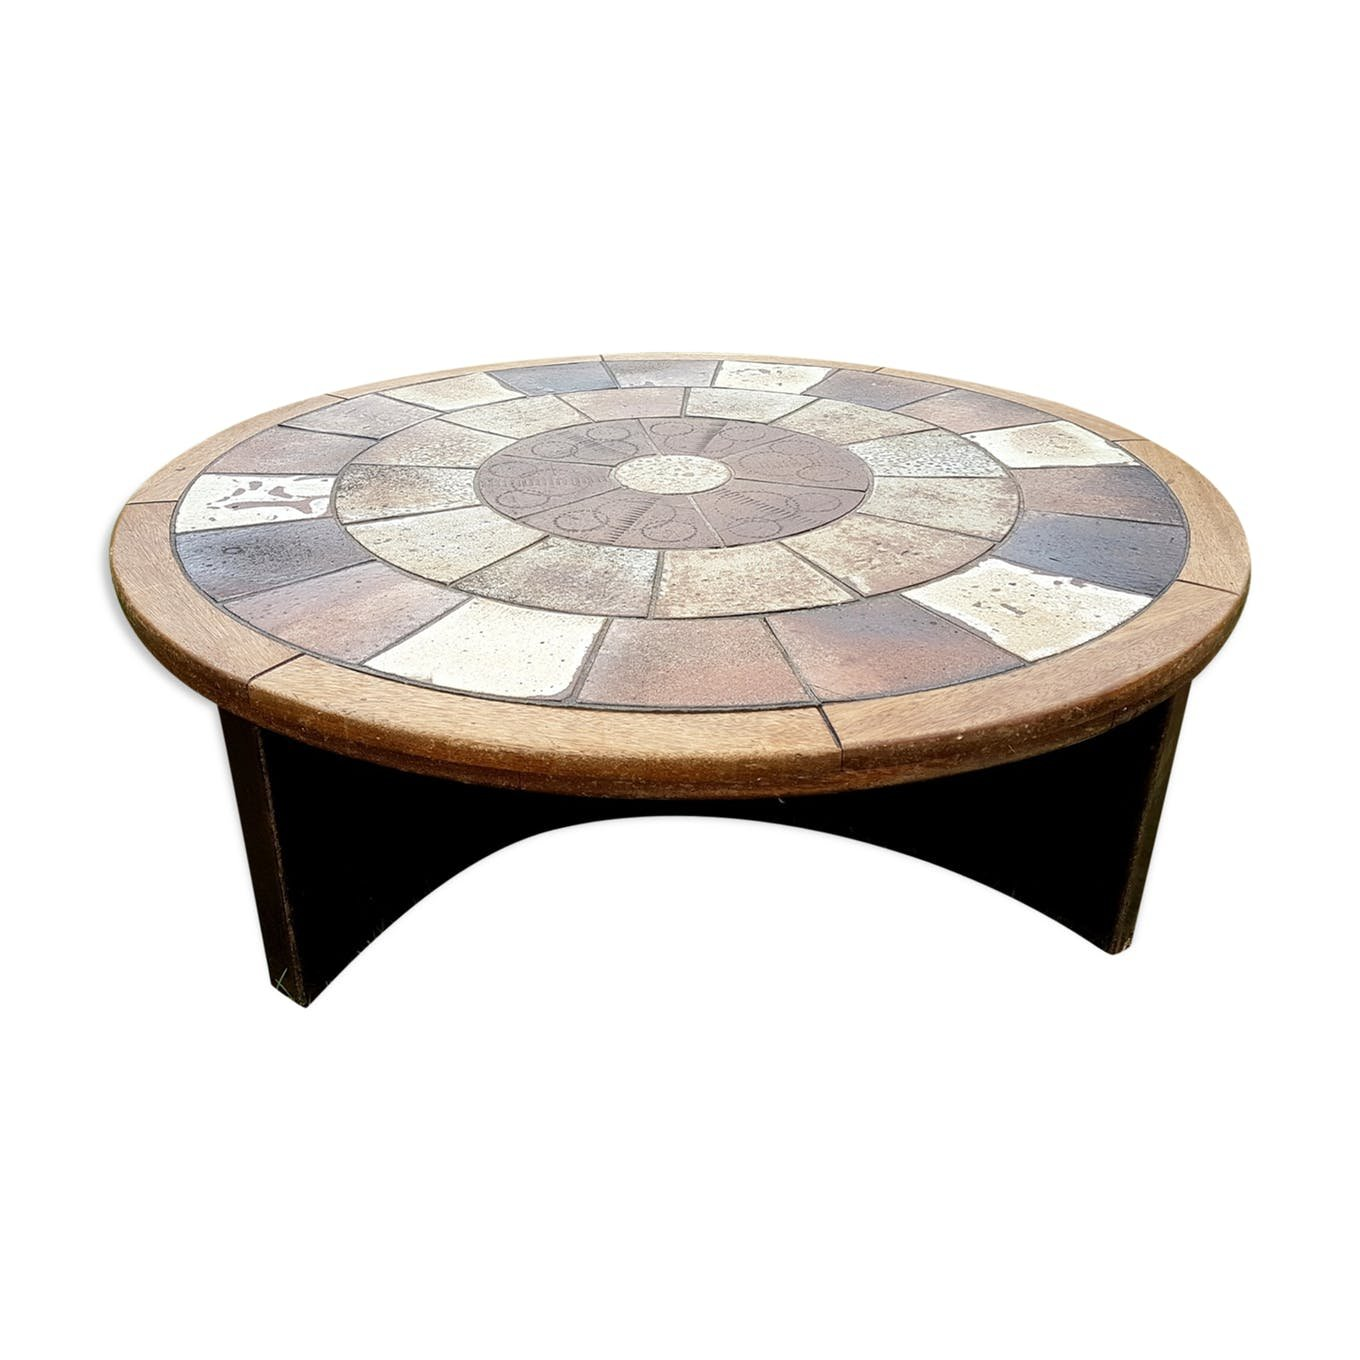 Round Coffee Table With Tile Inlay By Tue Poulsen For Haslev S - Coffee table with tile inlay